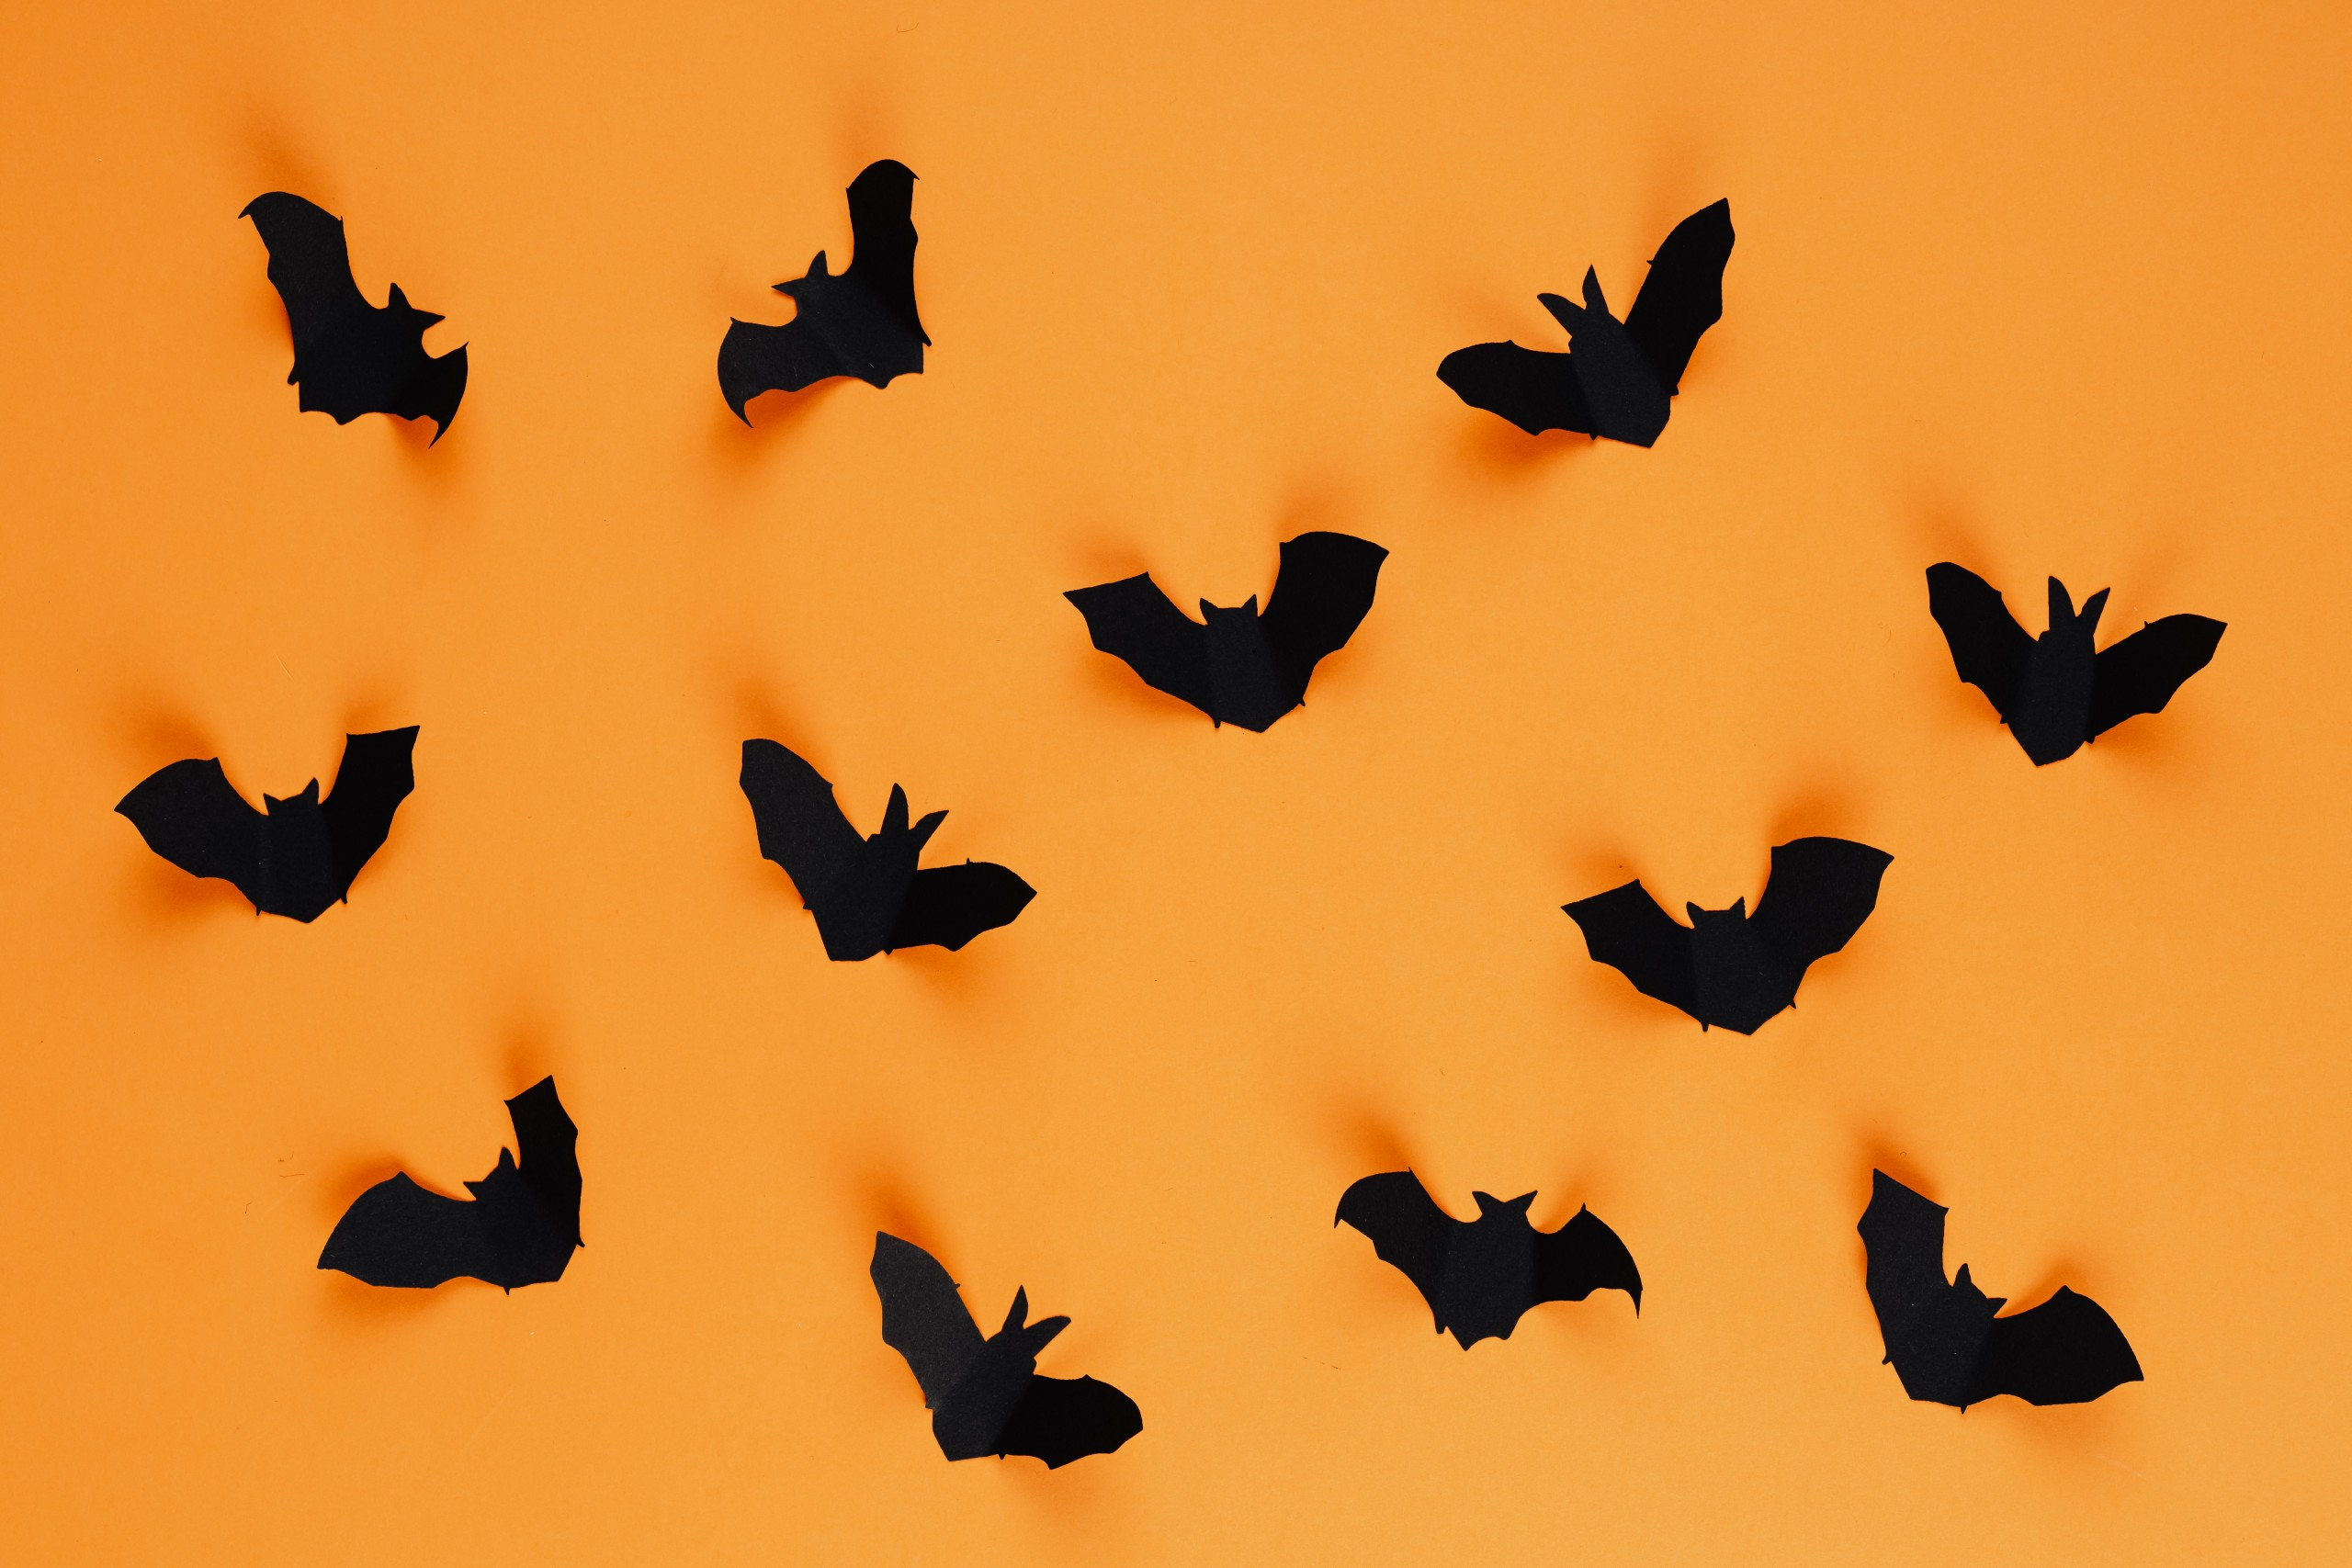 Black Construction paper bats on orange background.